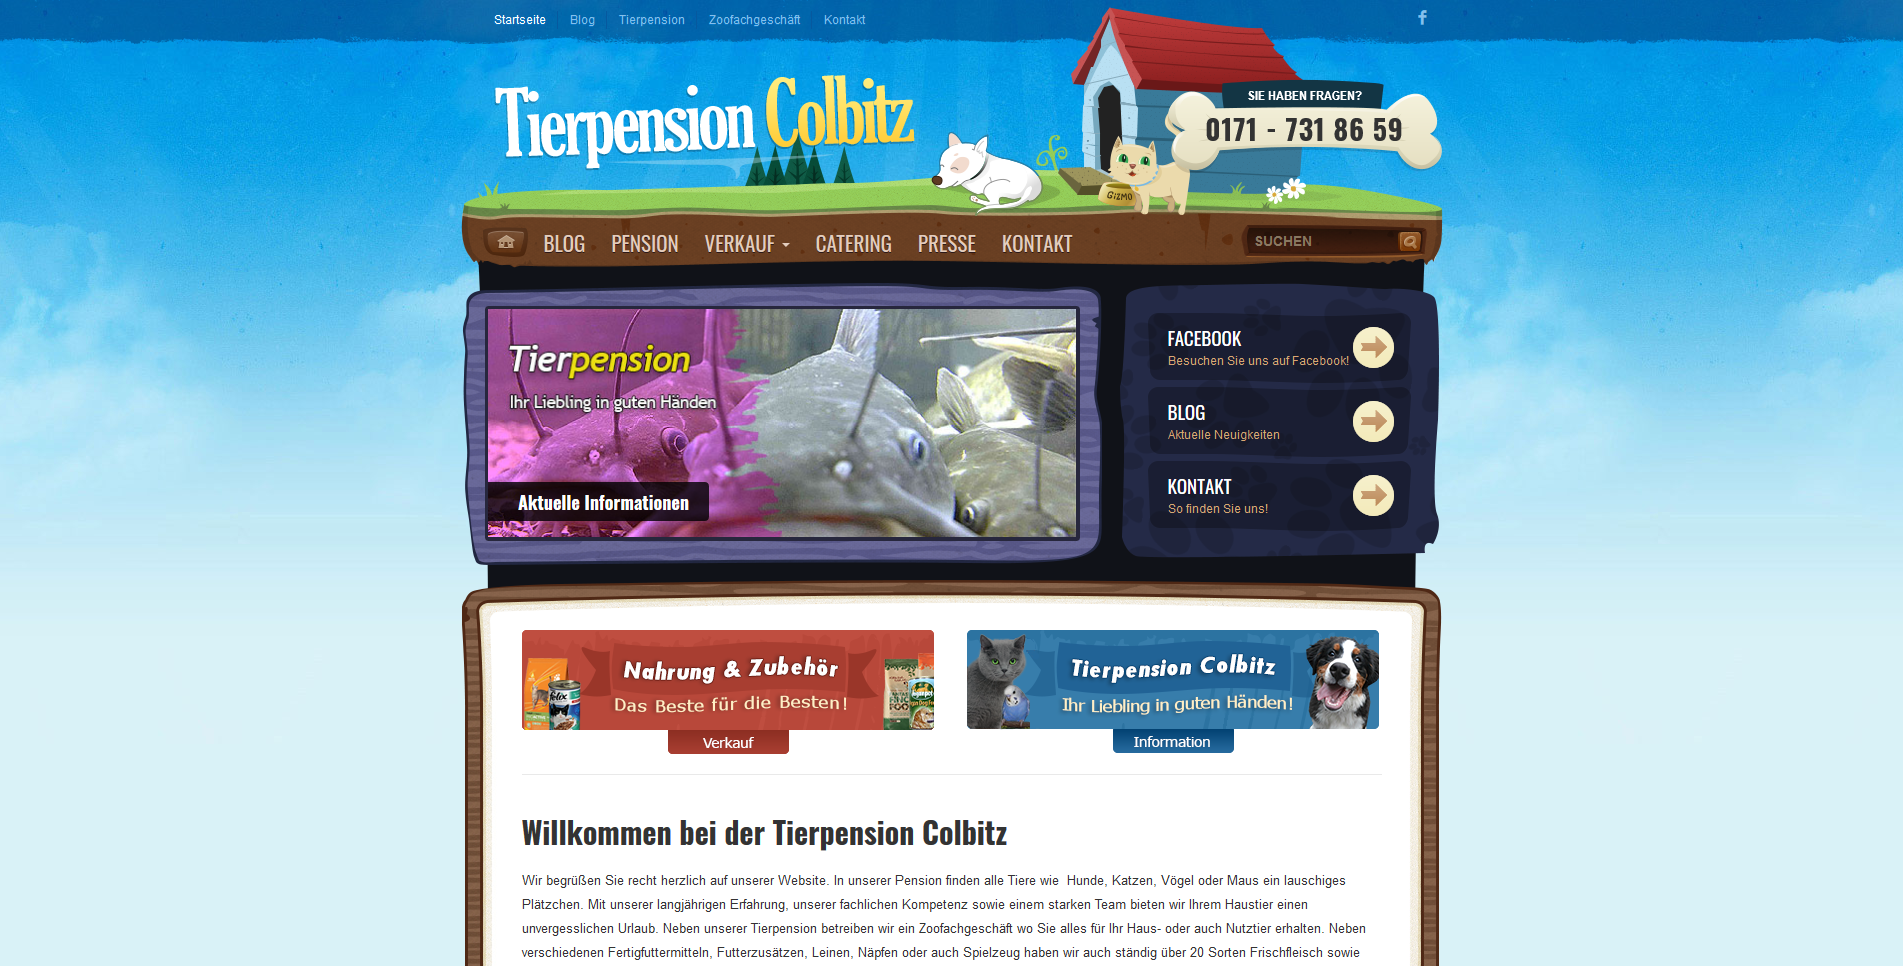 Tierpension Colbitz